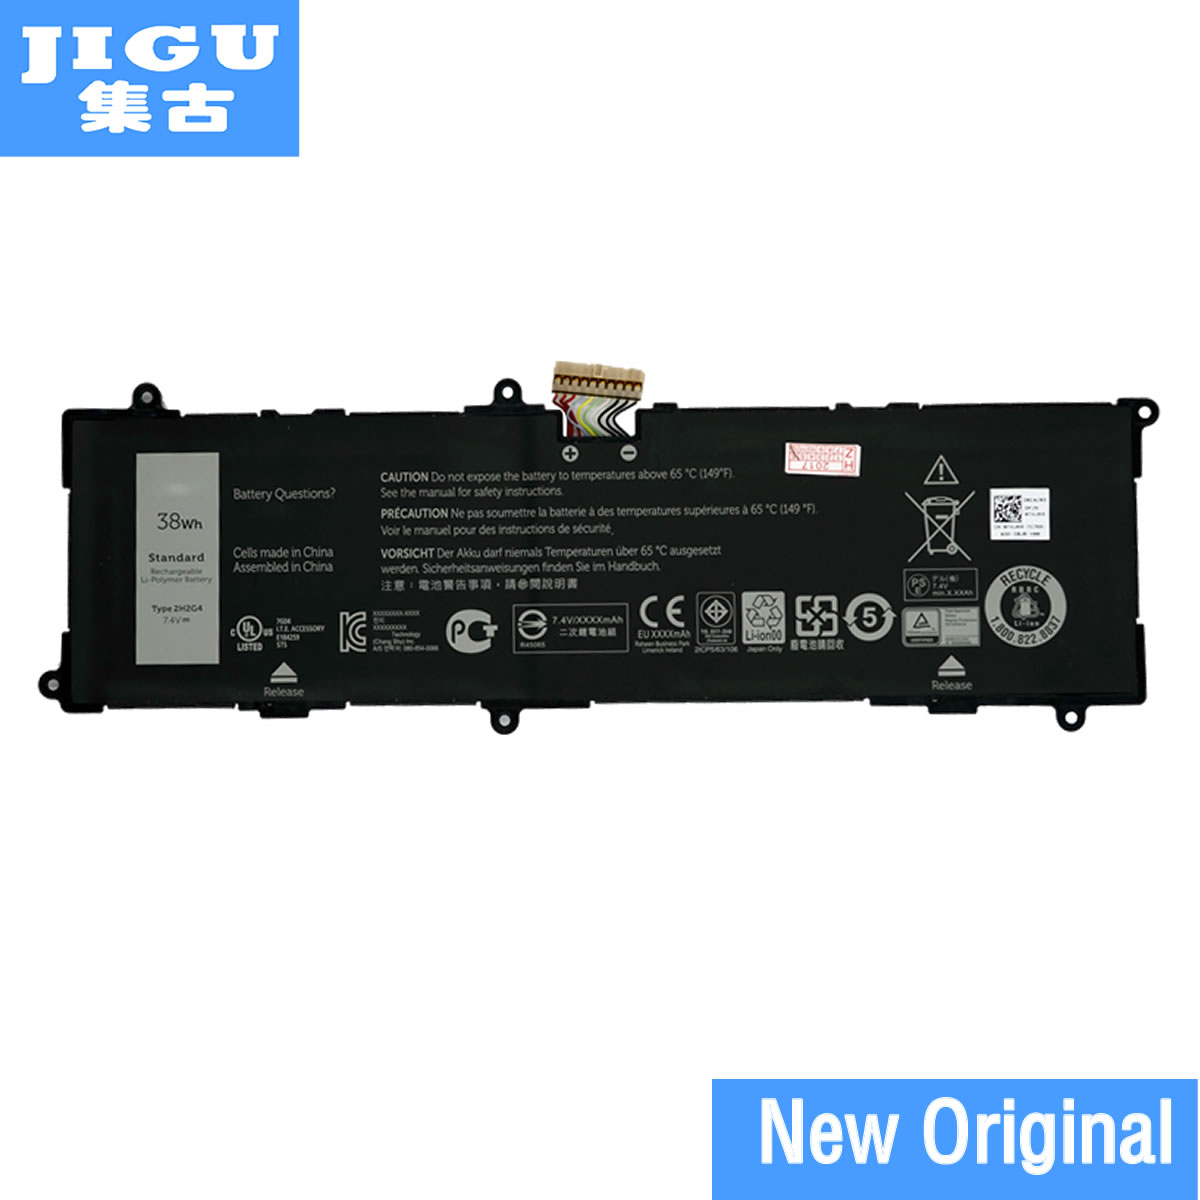 JIGU Laptop Battery 2H2G4 HFRC3 FOR DELL Venue 11 Pro 7140 Tablet стоимость